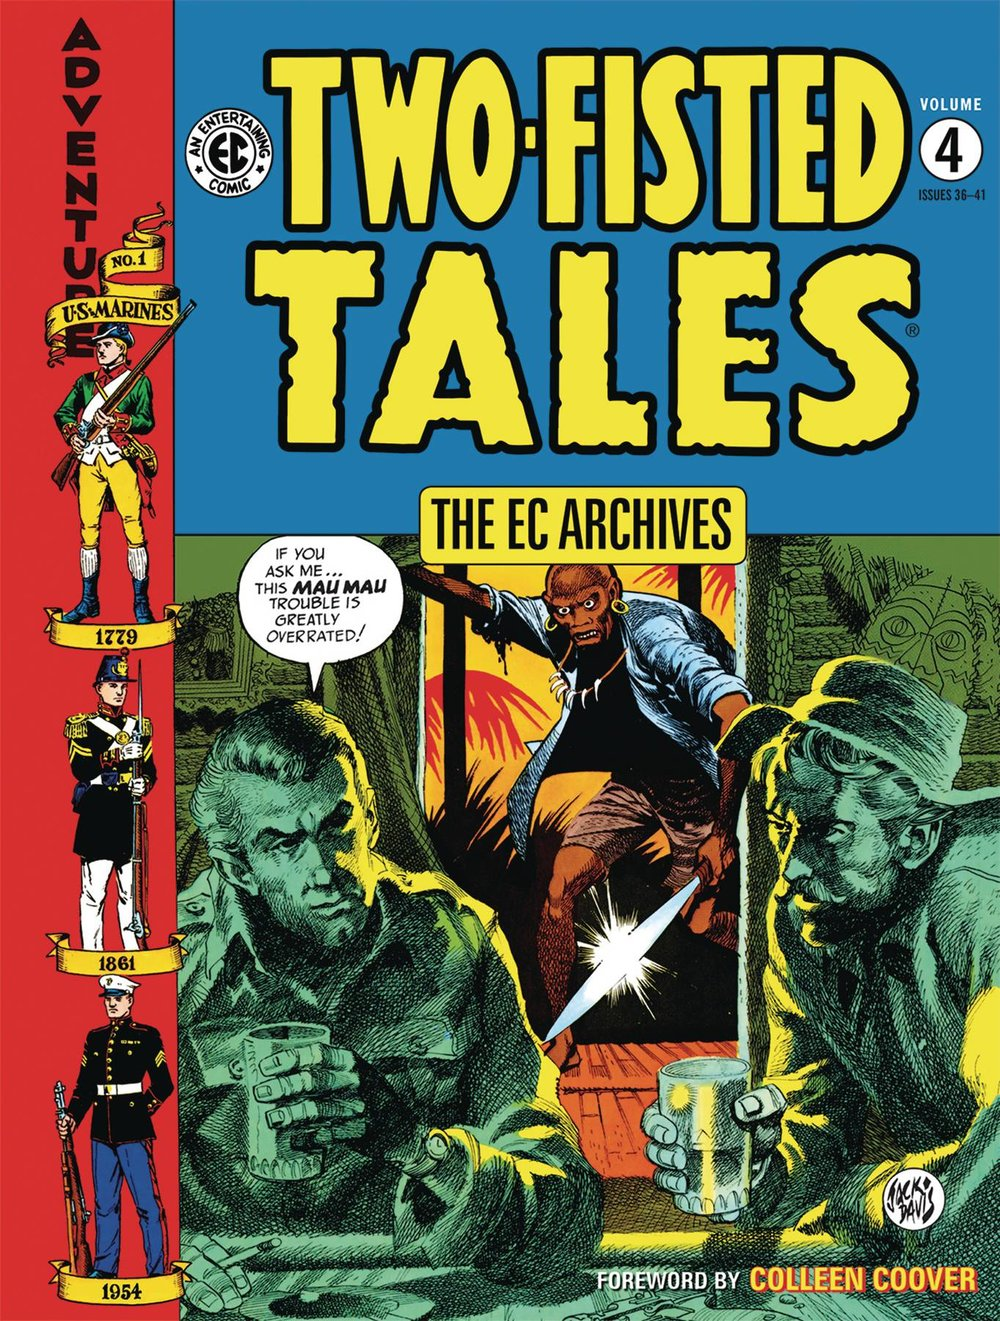 EC ARCHIVES TWO-FISTED TALES HC 4.jpg